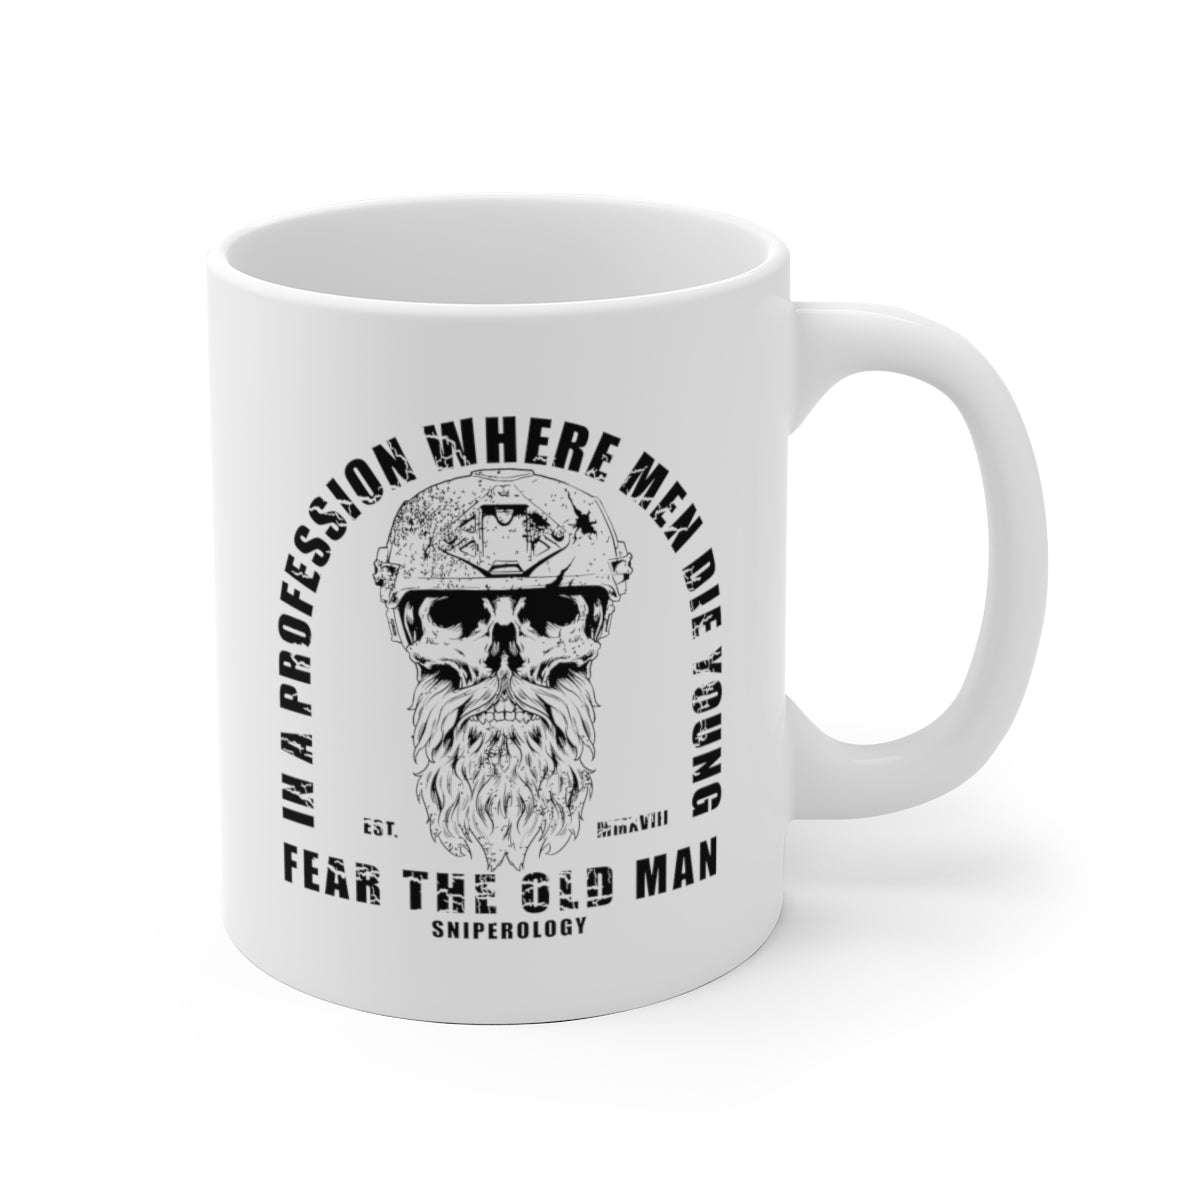 Fear The Old Man - White Ceramic Mug - Sniperology